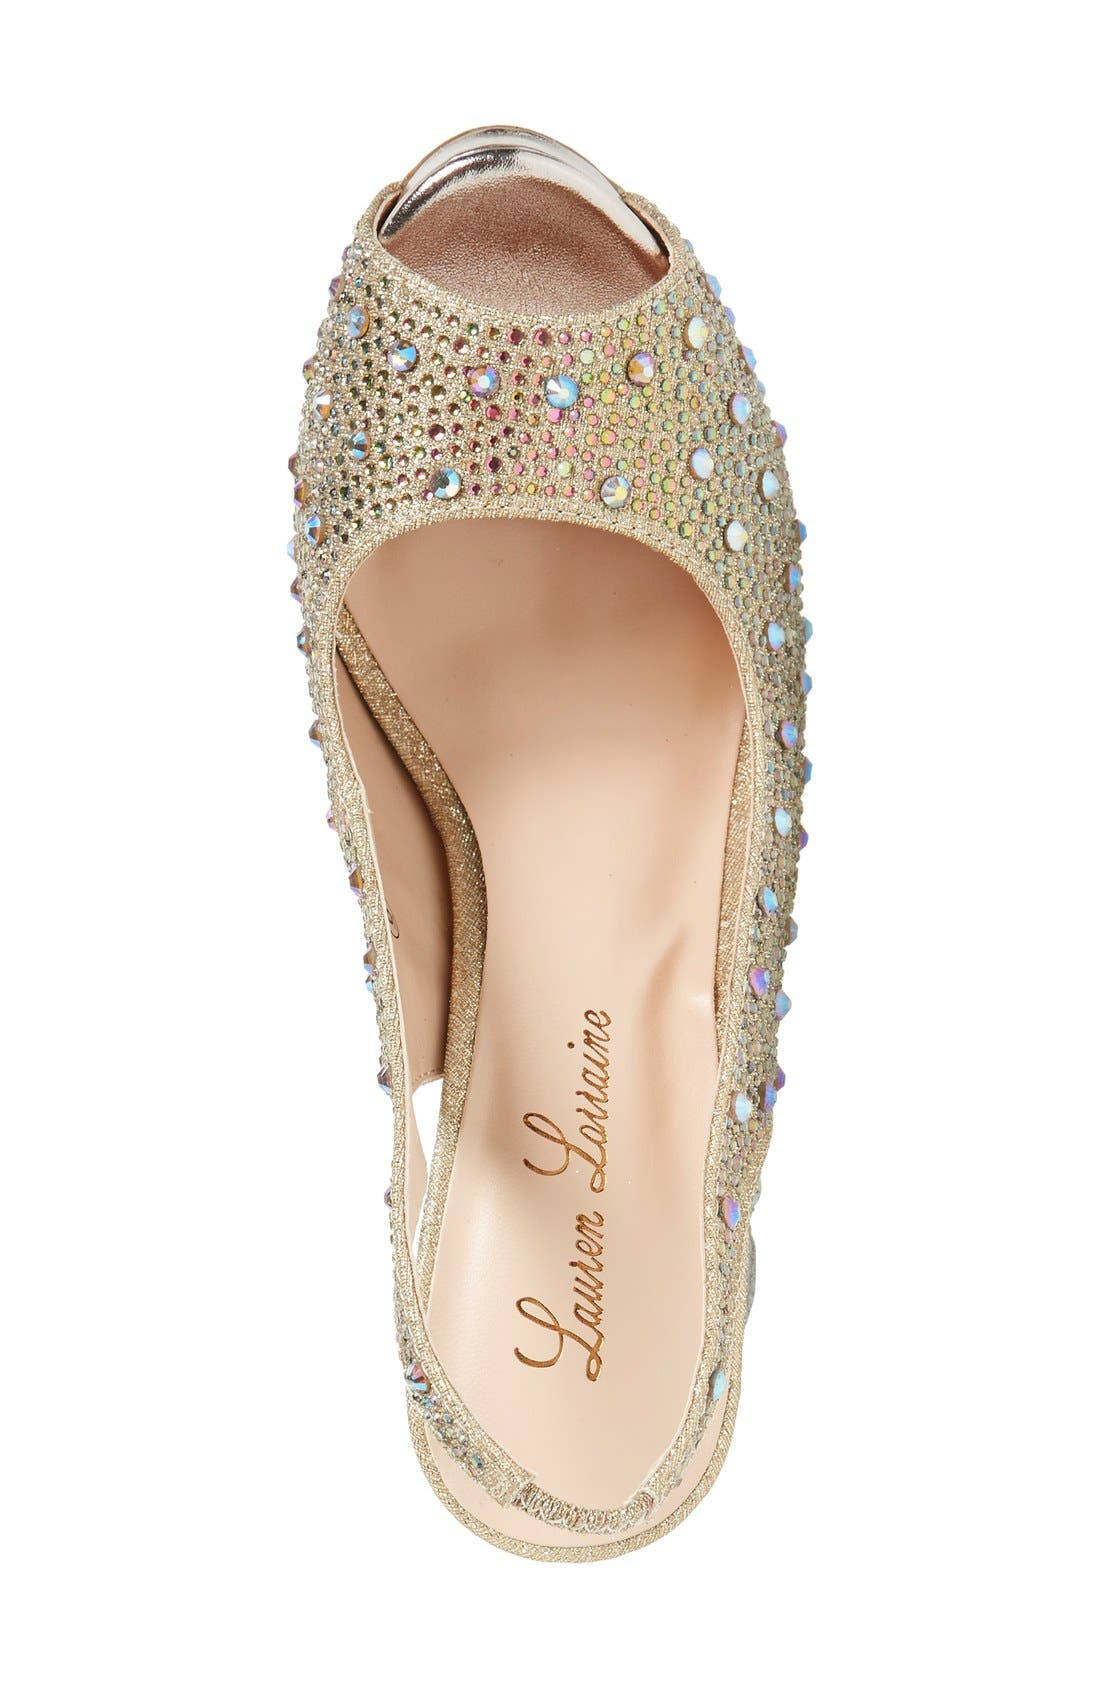 Alternate Image 3  - Lauren Lorraine 'Candy' Crystal Slingback Pump (Women)